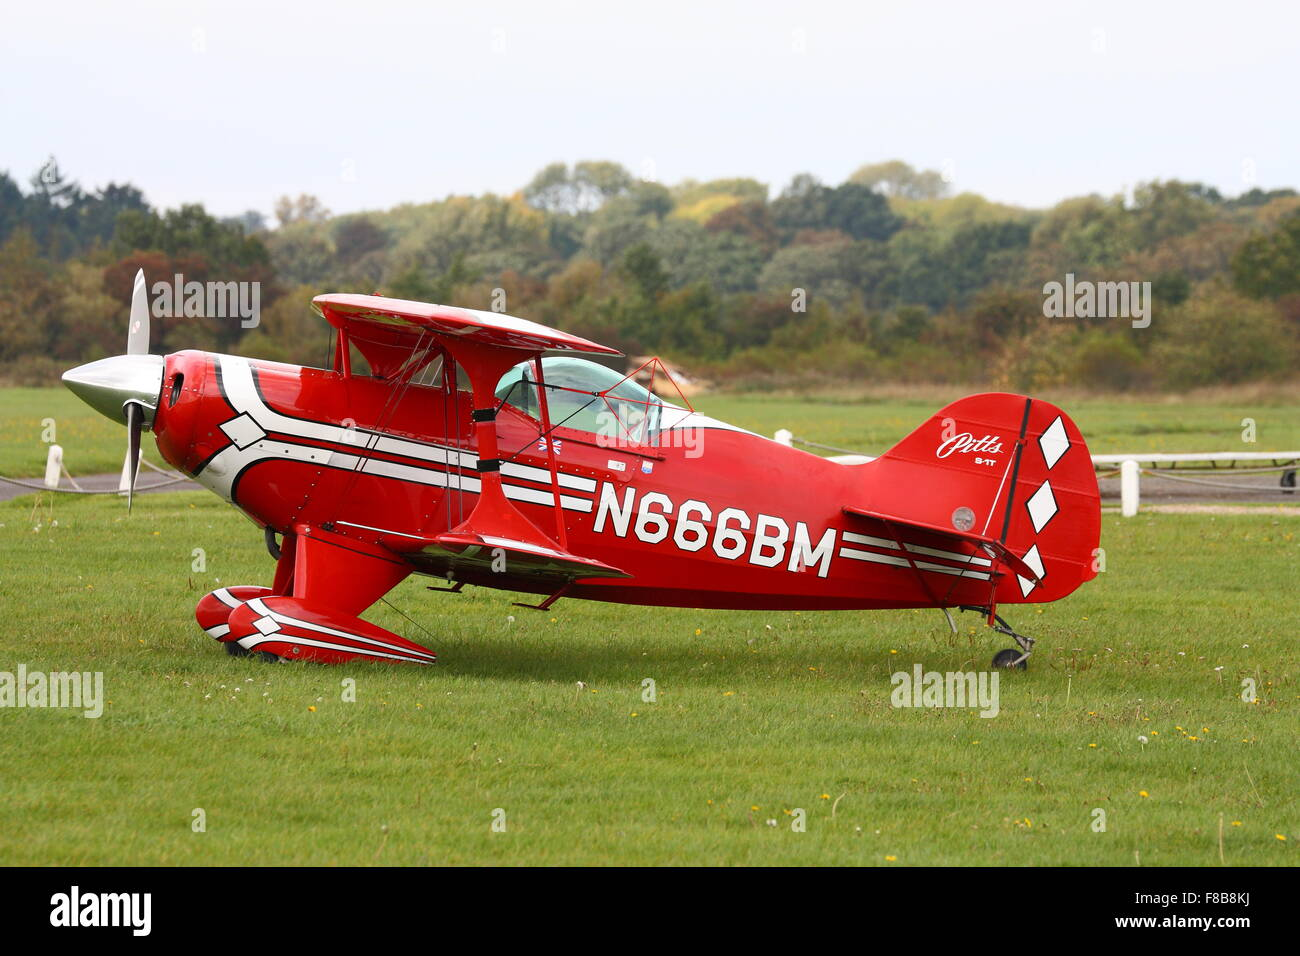 A Pitts Special ready for take off at White Waltham Airfield - Stock Image